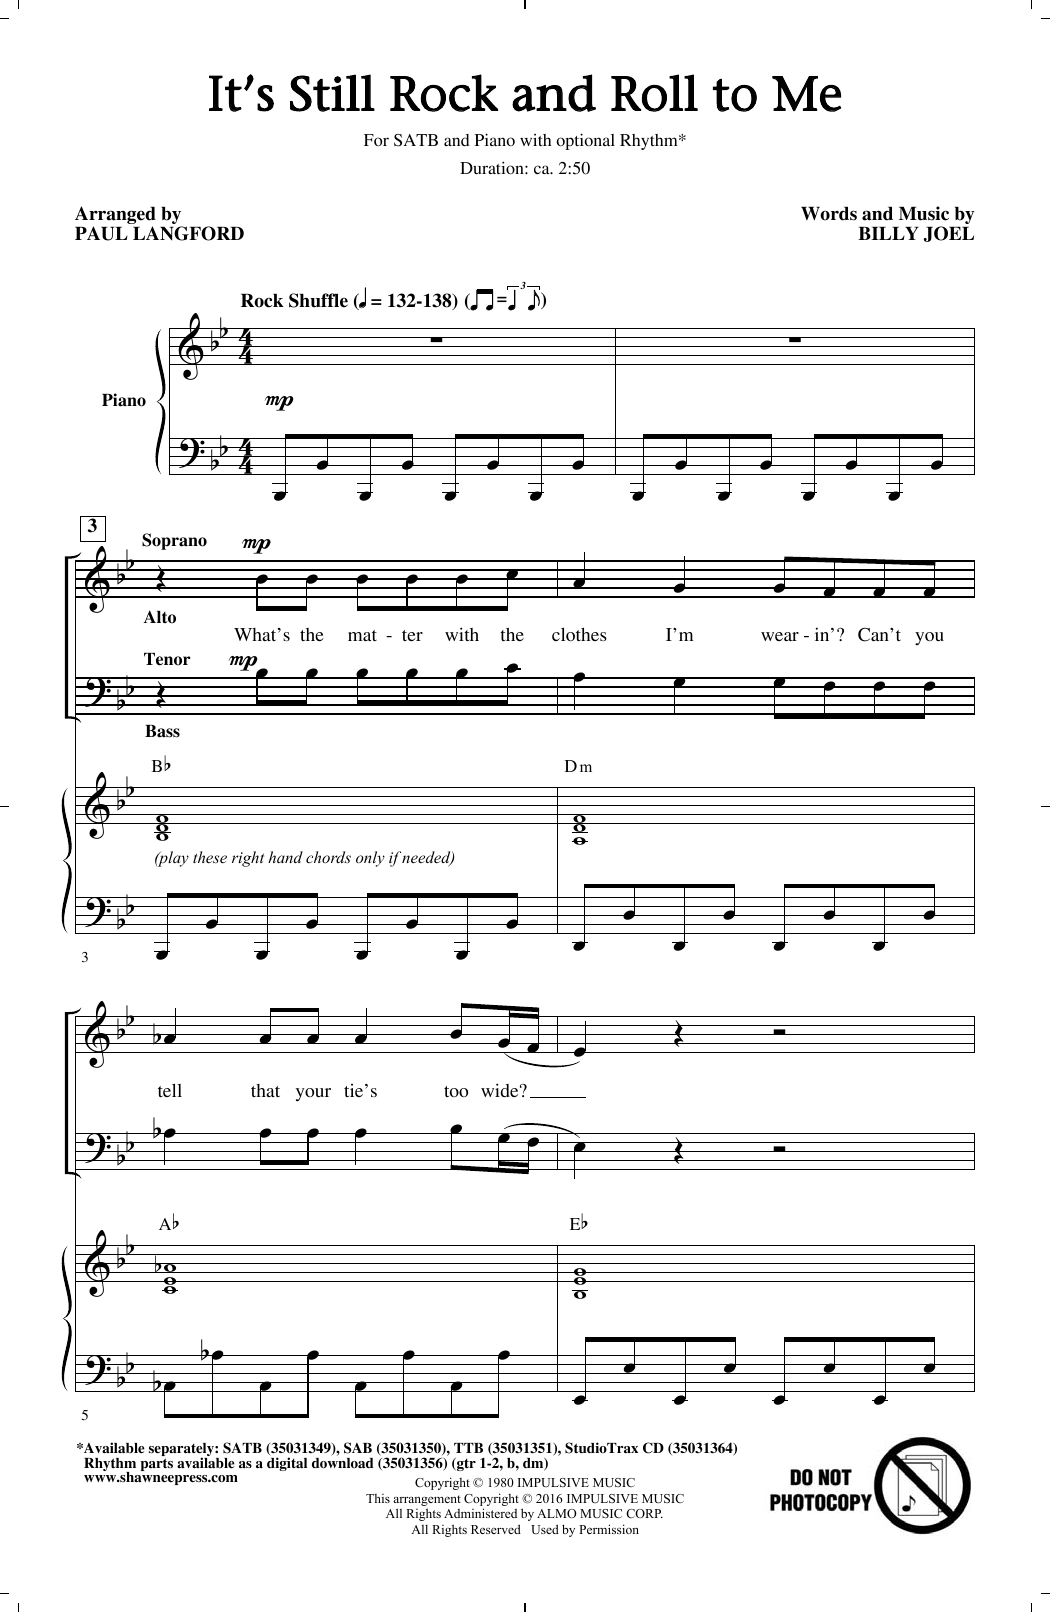 It's Still Rock And Roll To Me (SATB Choir)